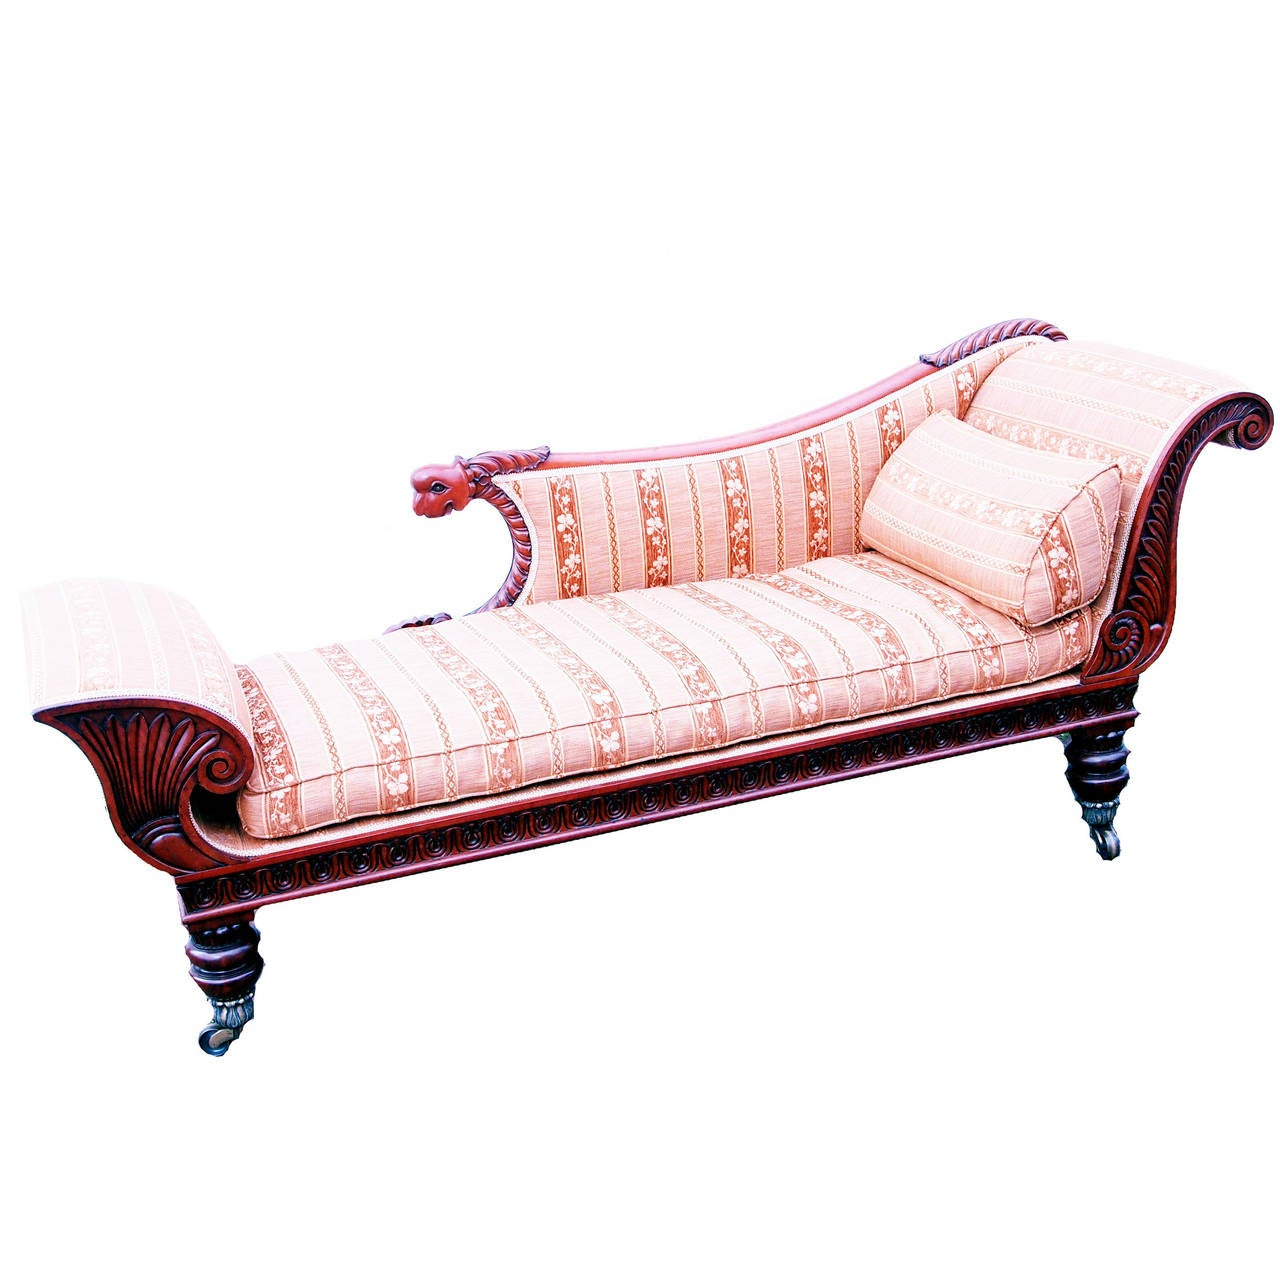 Antique regency period mahogany chaise longue at 1stdibs for Antique chaise longue